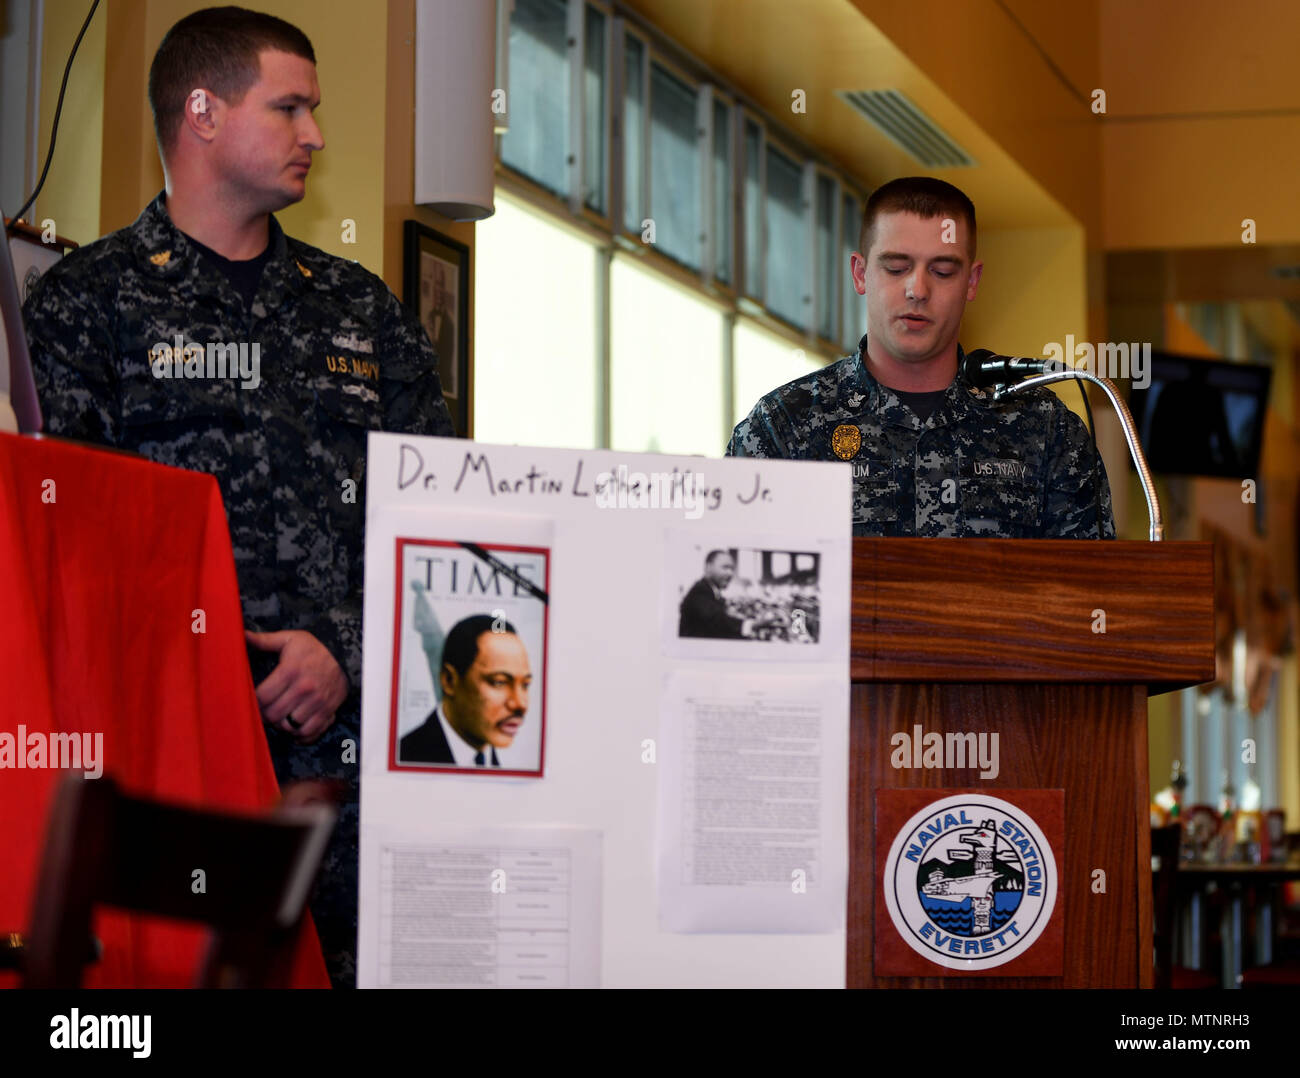 170113-N-WX604-016 EVERETT, Wash. (Jan. 13, 2017)  Master-at-Arms 1st Class John Winjum, assigned to Naval Station Everett (NSE) Security Forces, speaks at a Martin Luther King Jr. Day remembrance ceremony in NSE All-American Restaurant Jan. 13. Dr. King was a civil rights activist who worked to end racial segregation in the United States. (U.S. Navy photo by Mass Communication Specialist 3rd Class Joseph Montemarano/Released) - Stock Image